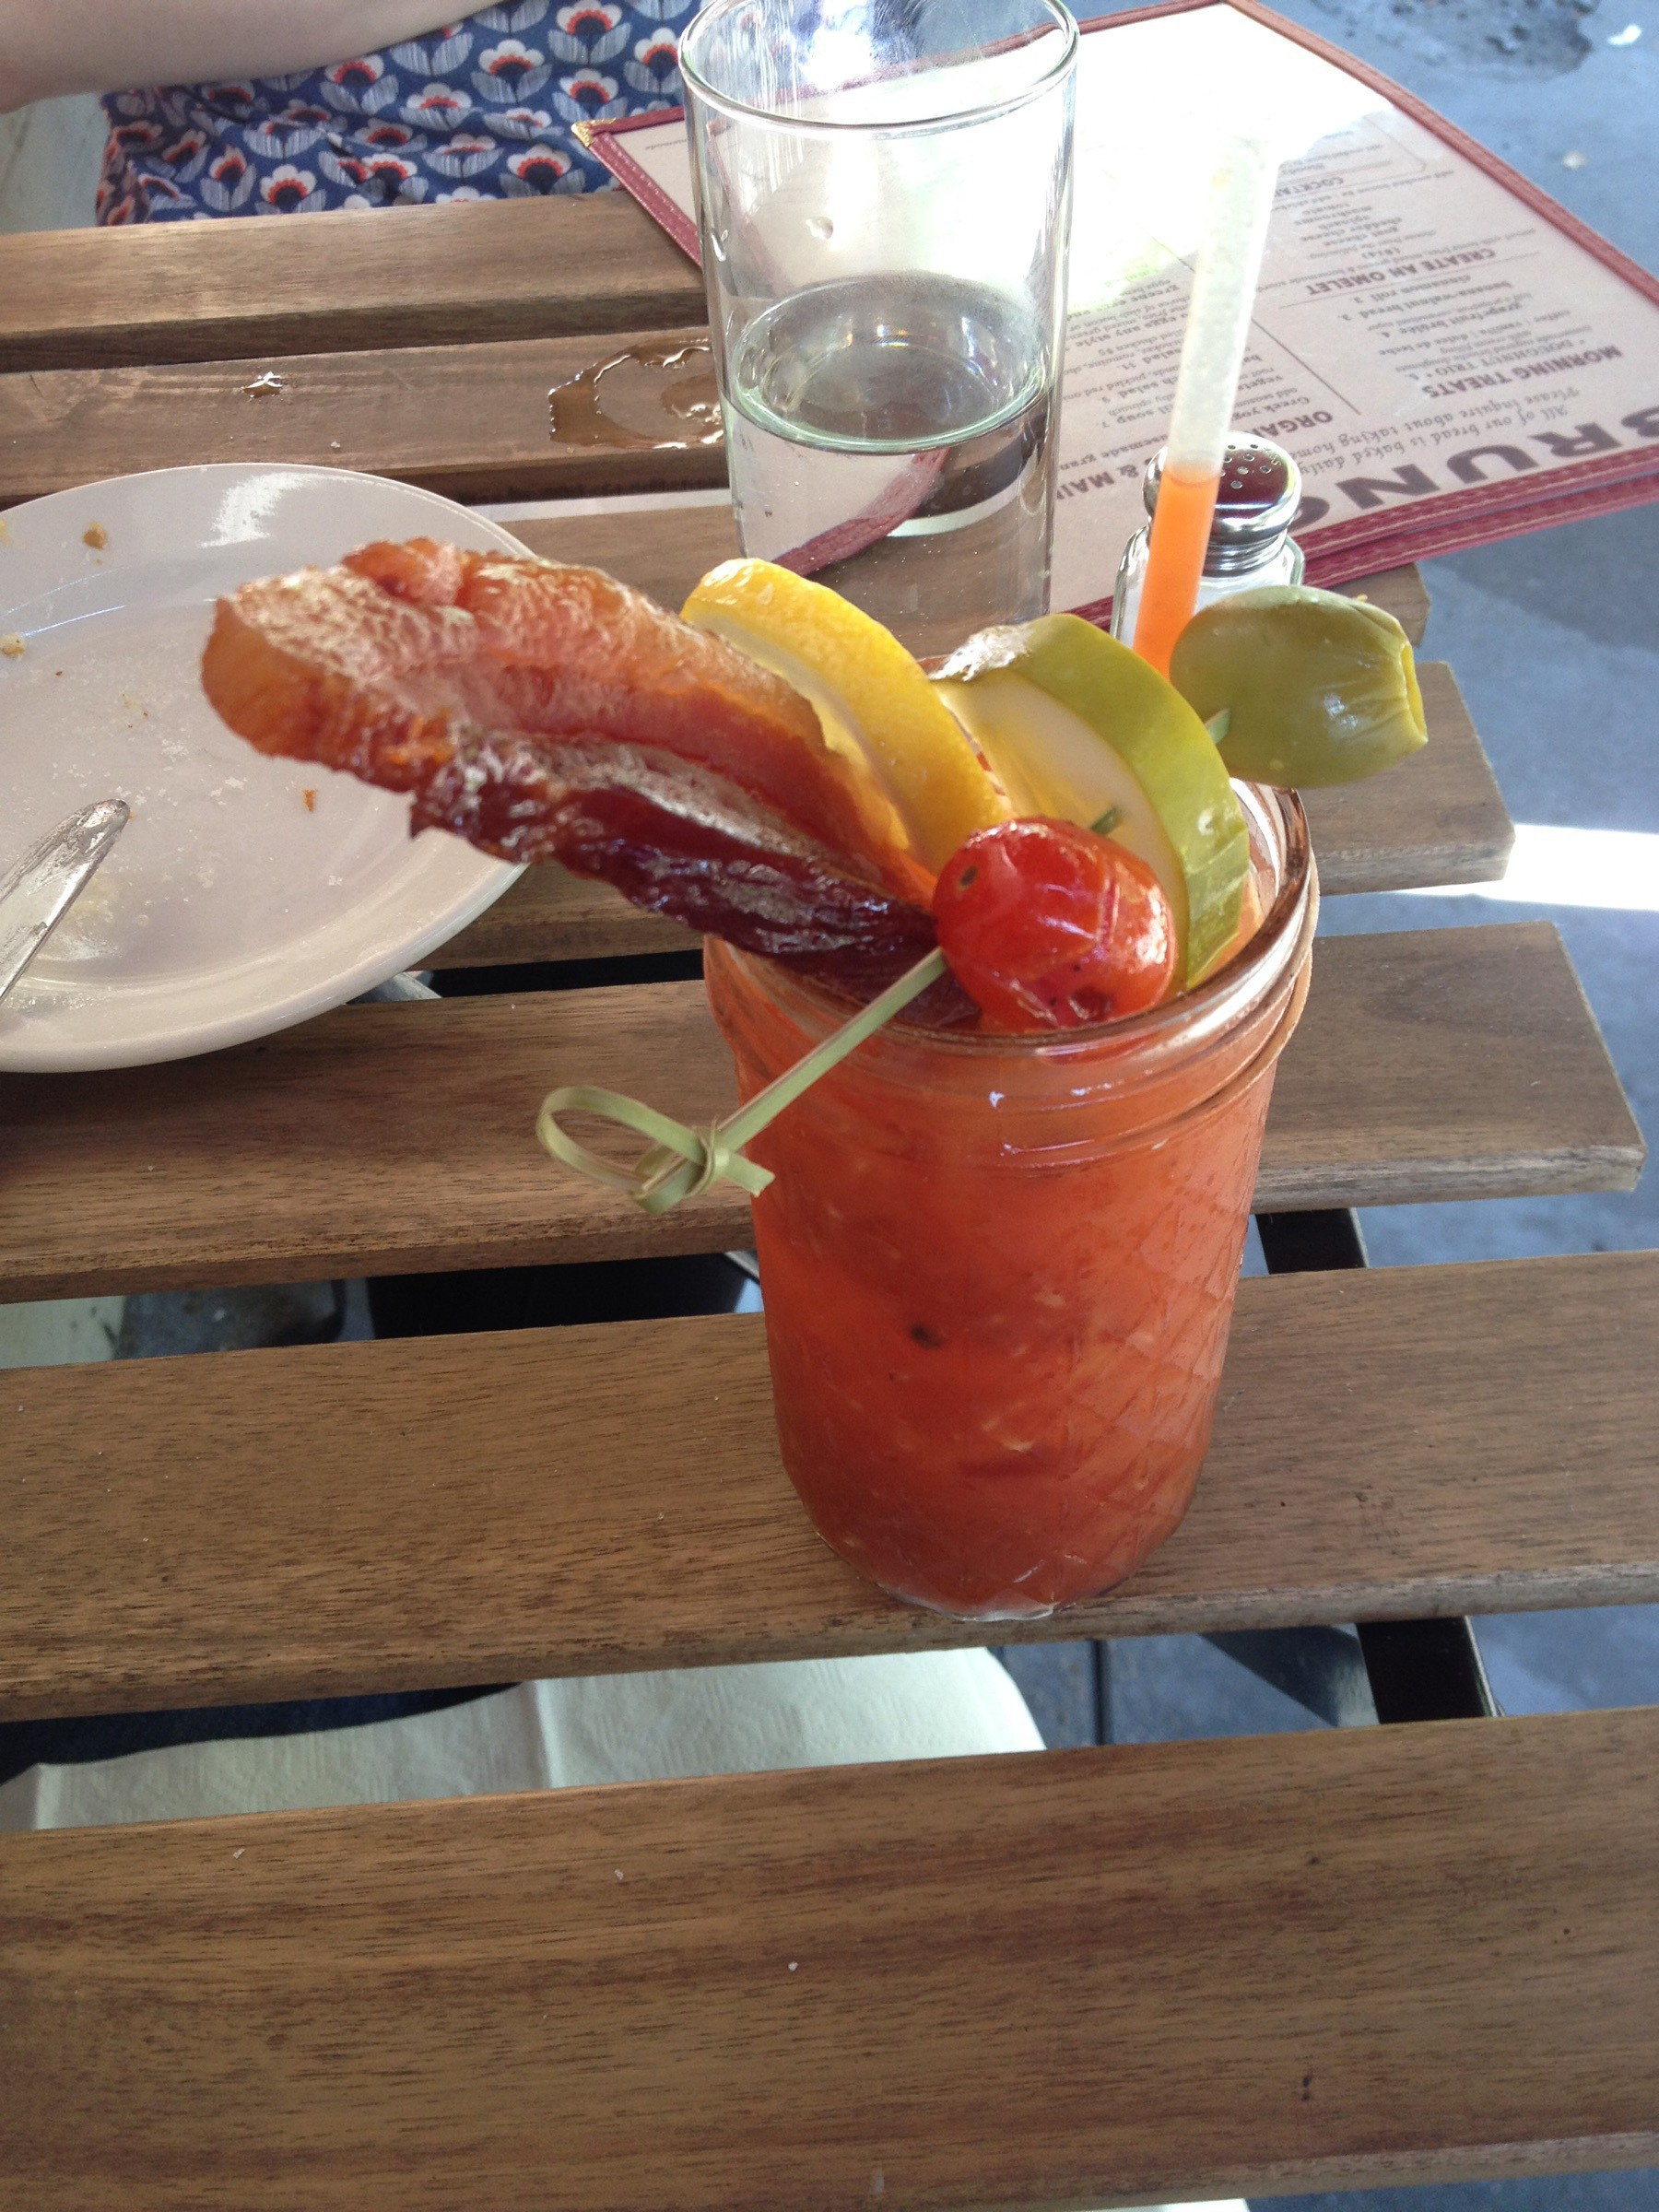 Bloody mary with lots of pickled veggies and bacon. On a picnic bench.